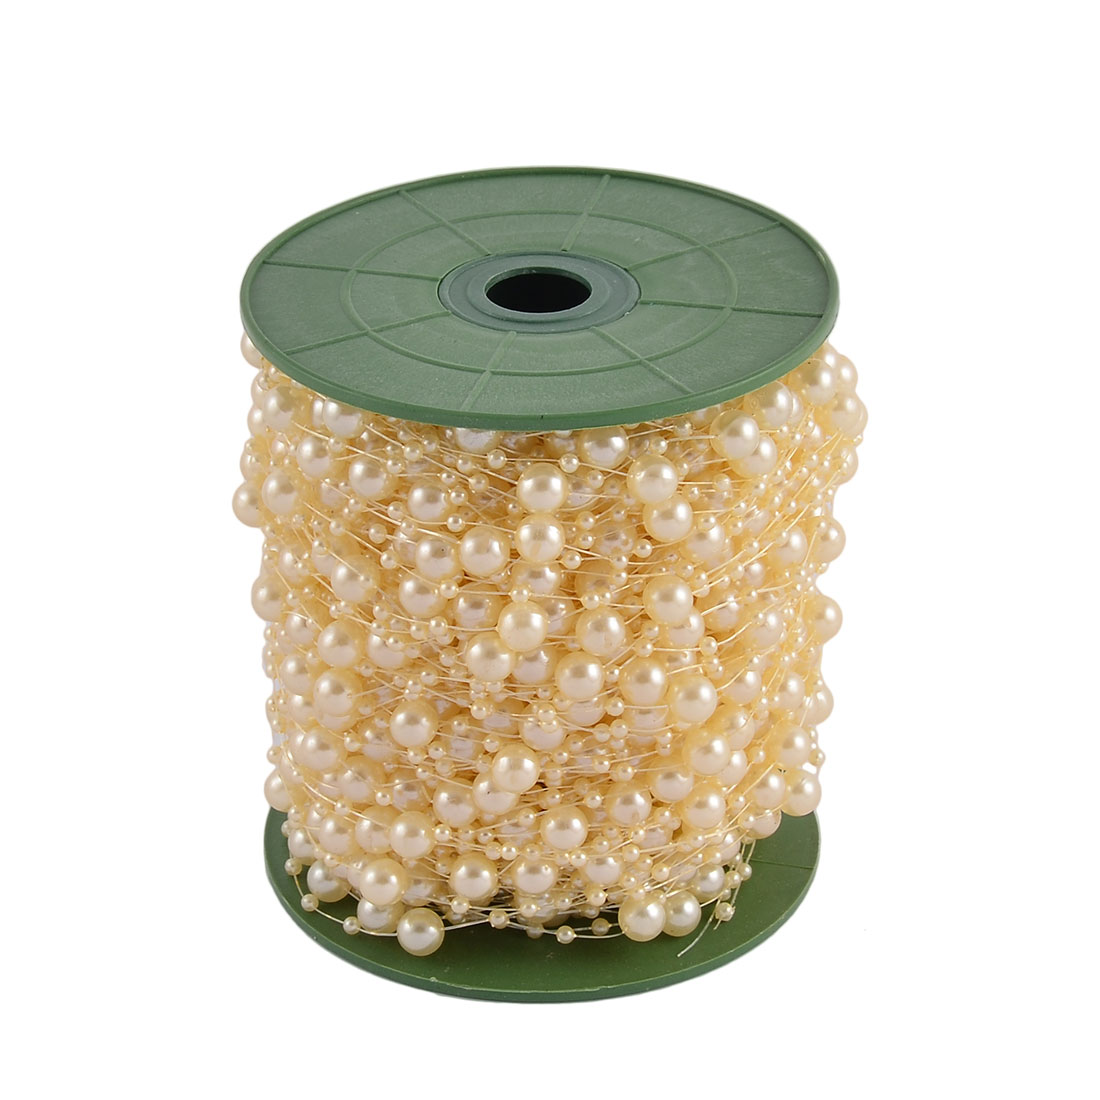 Festival Party Crafting DIY Garland Flower Table Decoration Imitation Pearl Beads String Roll Light Yellow